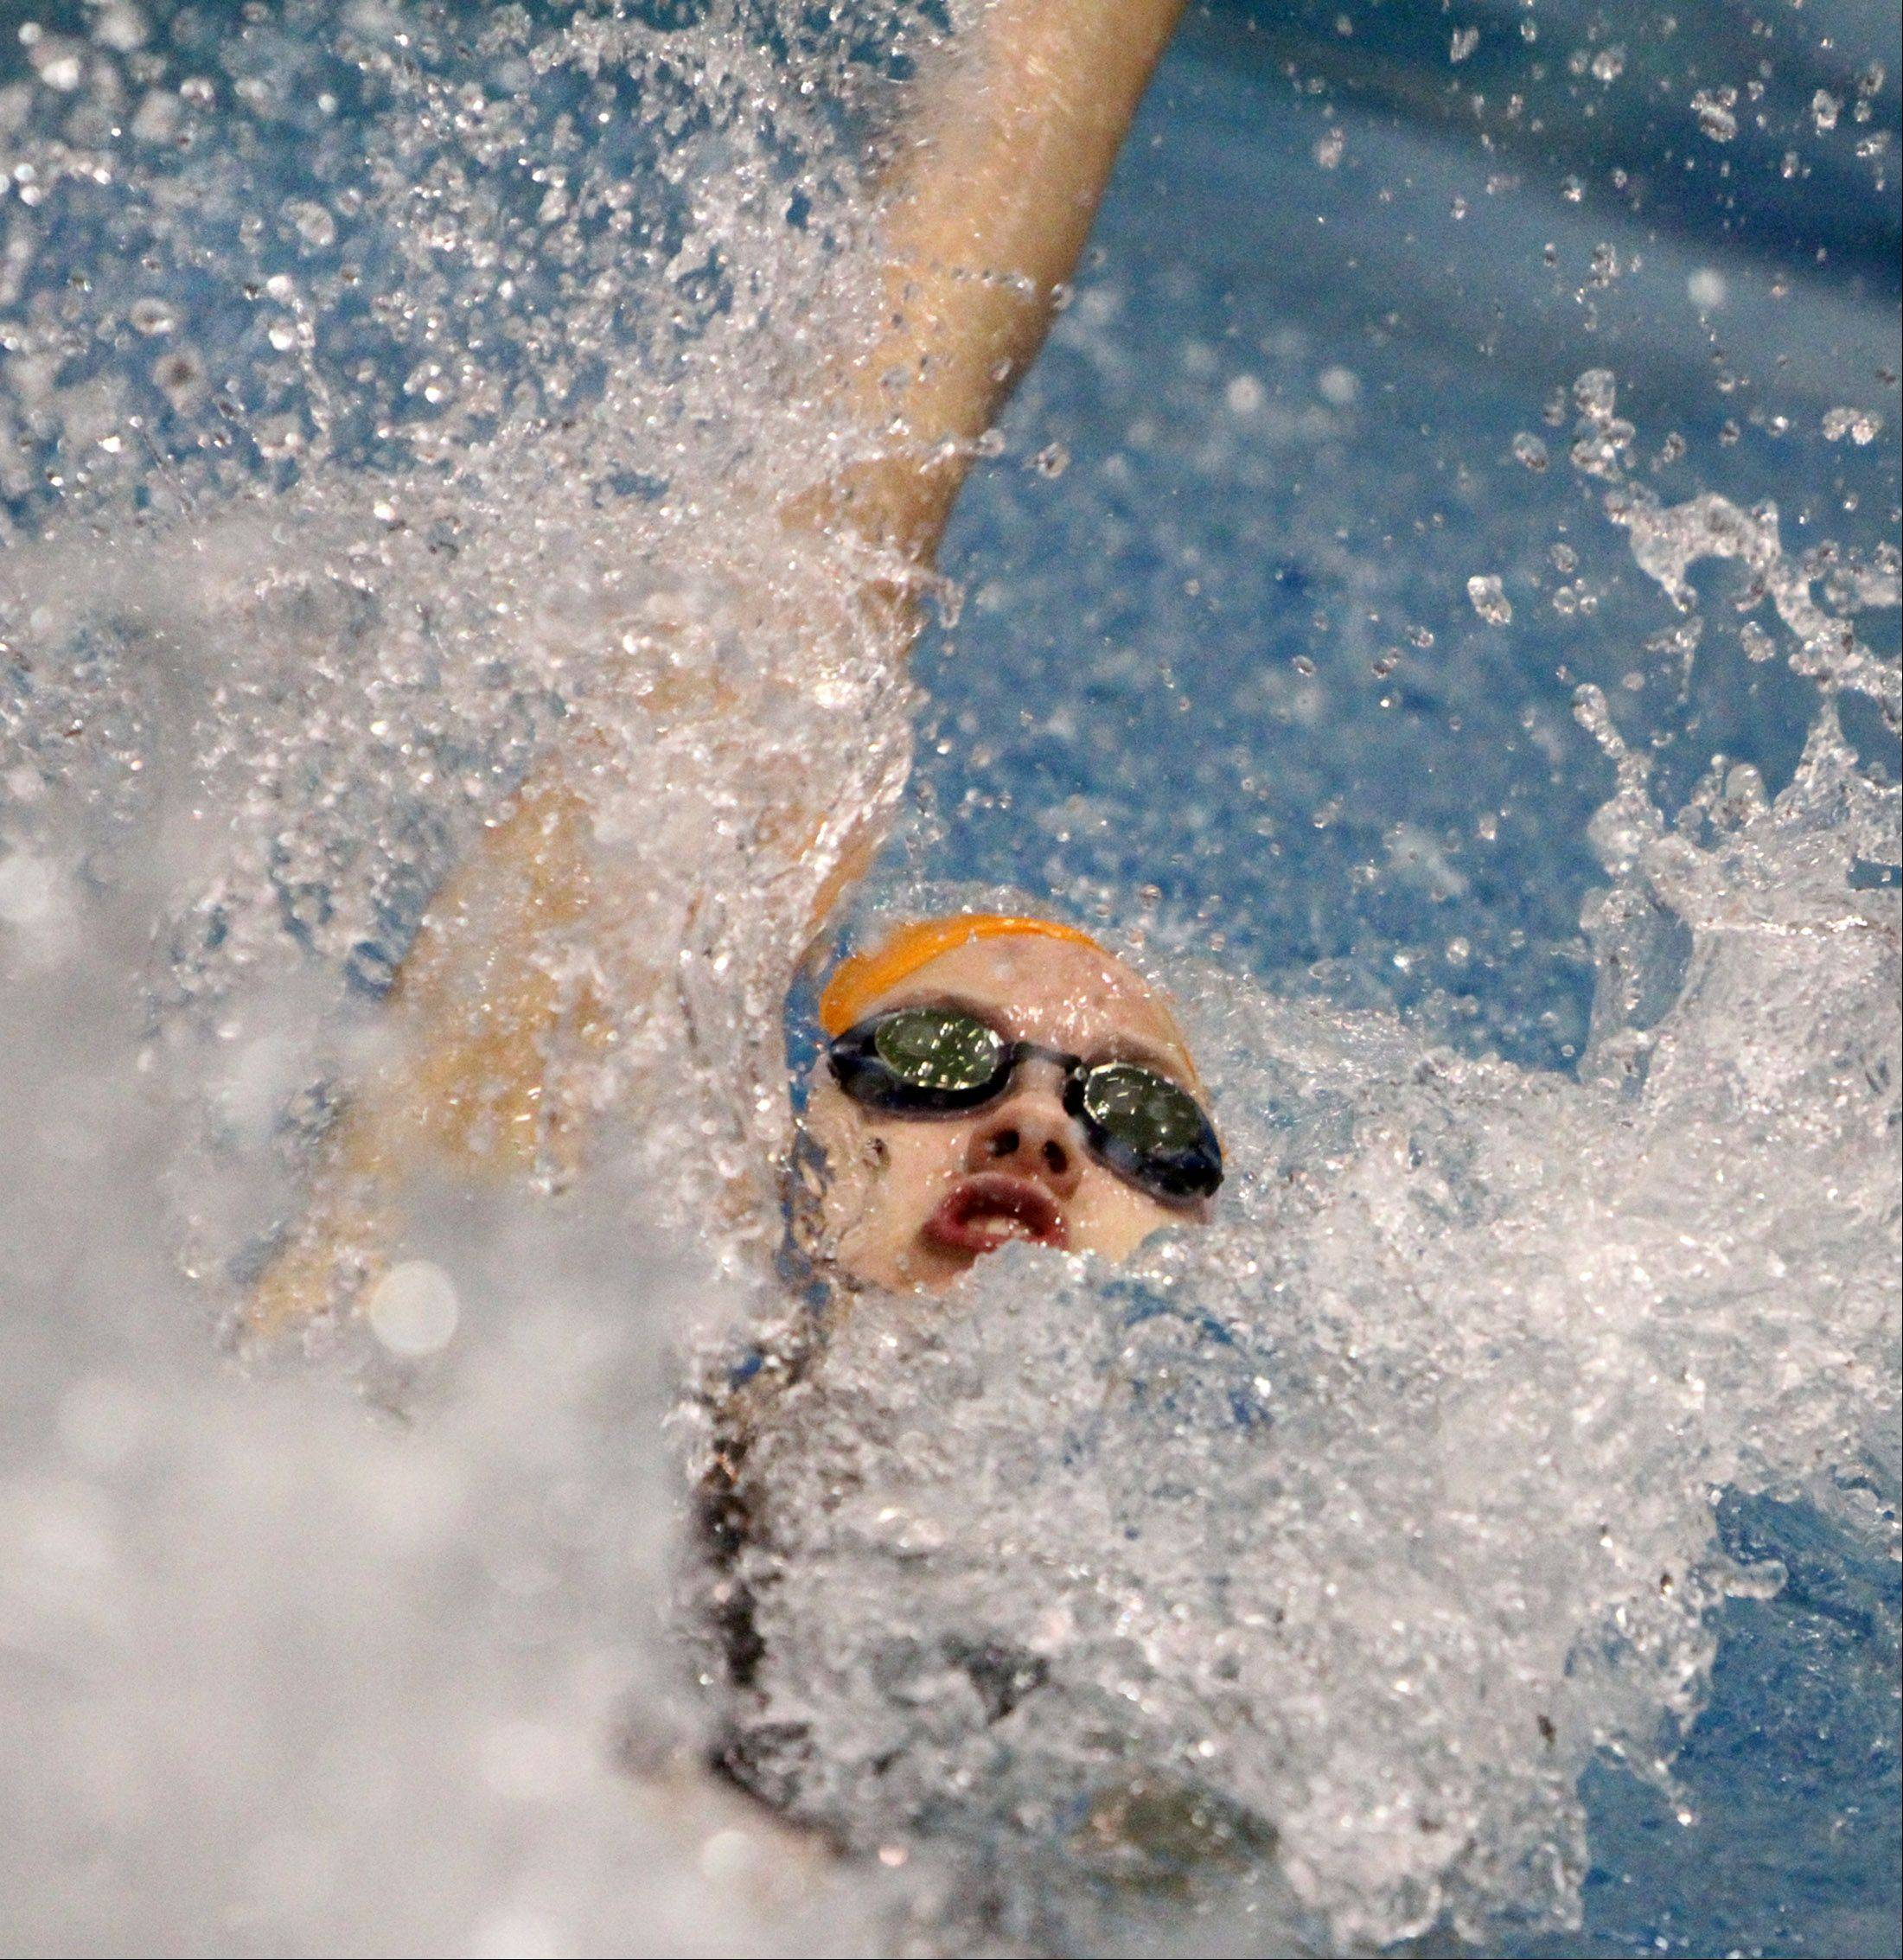 Buffalo Grove's Veronika Jedryka competes in the 100 backstroke at the state meet preliminaries in Winnetka on Friday.